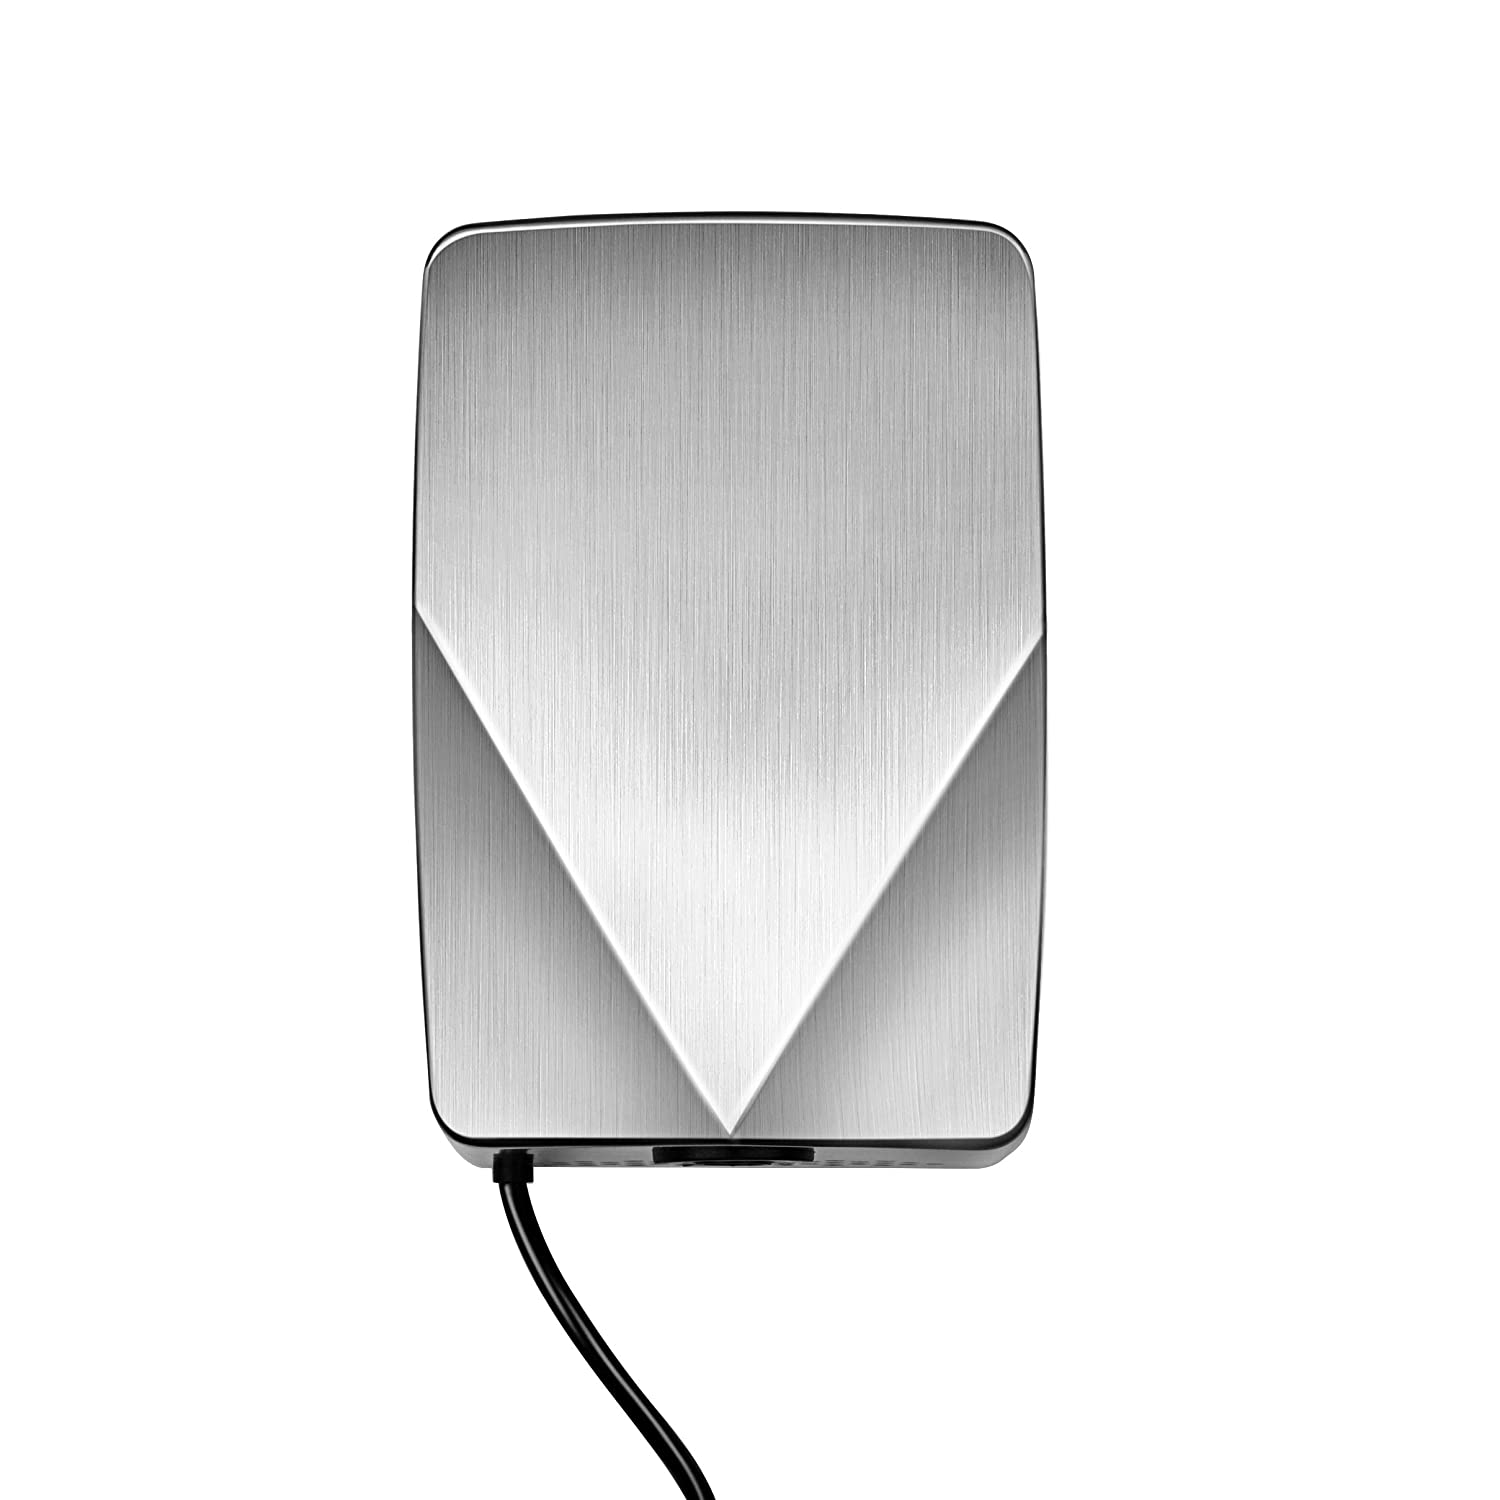 Kingwe 1028 Automatic Intelligent Induction Hand Dryer, High Speed Hot air Hand Blower / 304 Stainless Steel / /Easy Installation/Energy-efficient/for Home,Hotel Commercial Bathroom